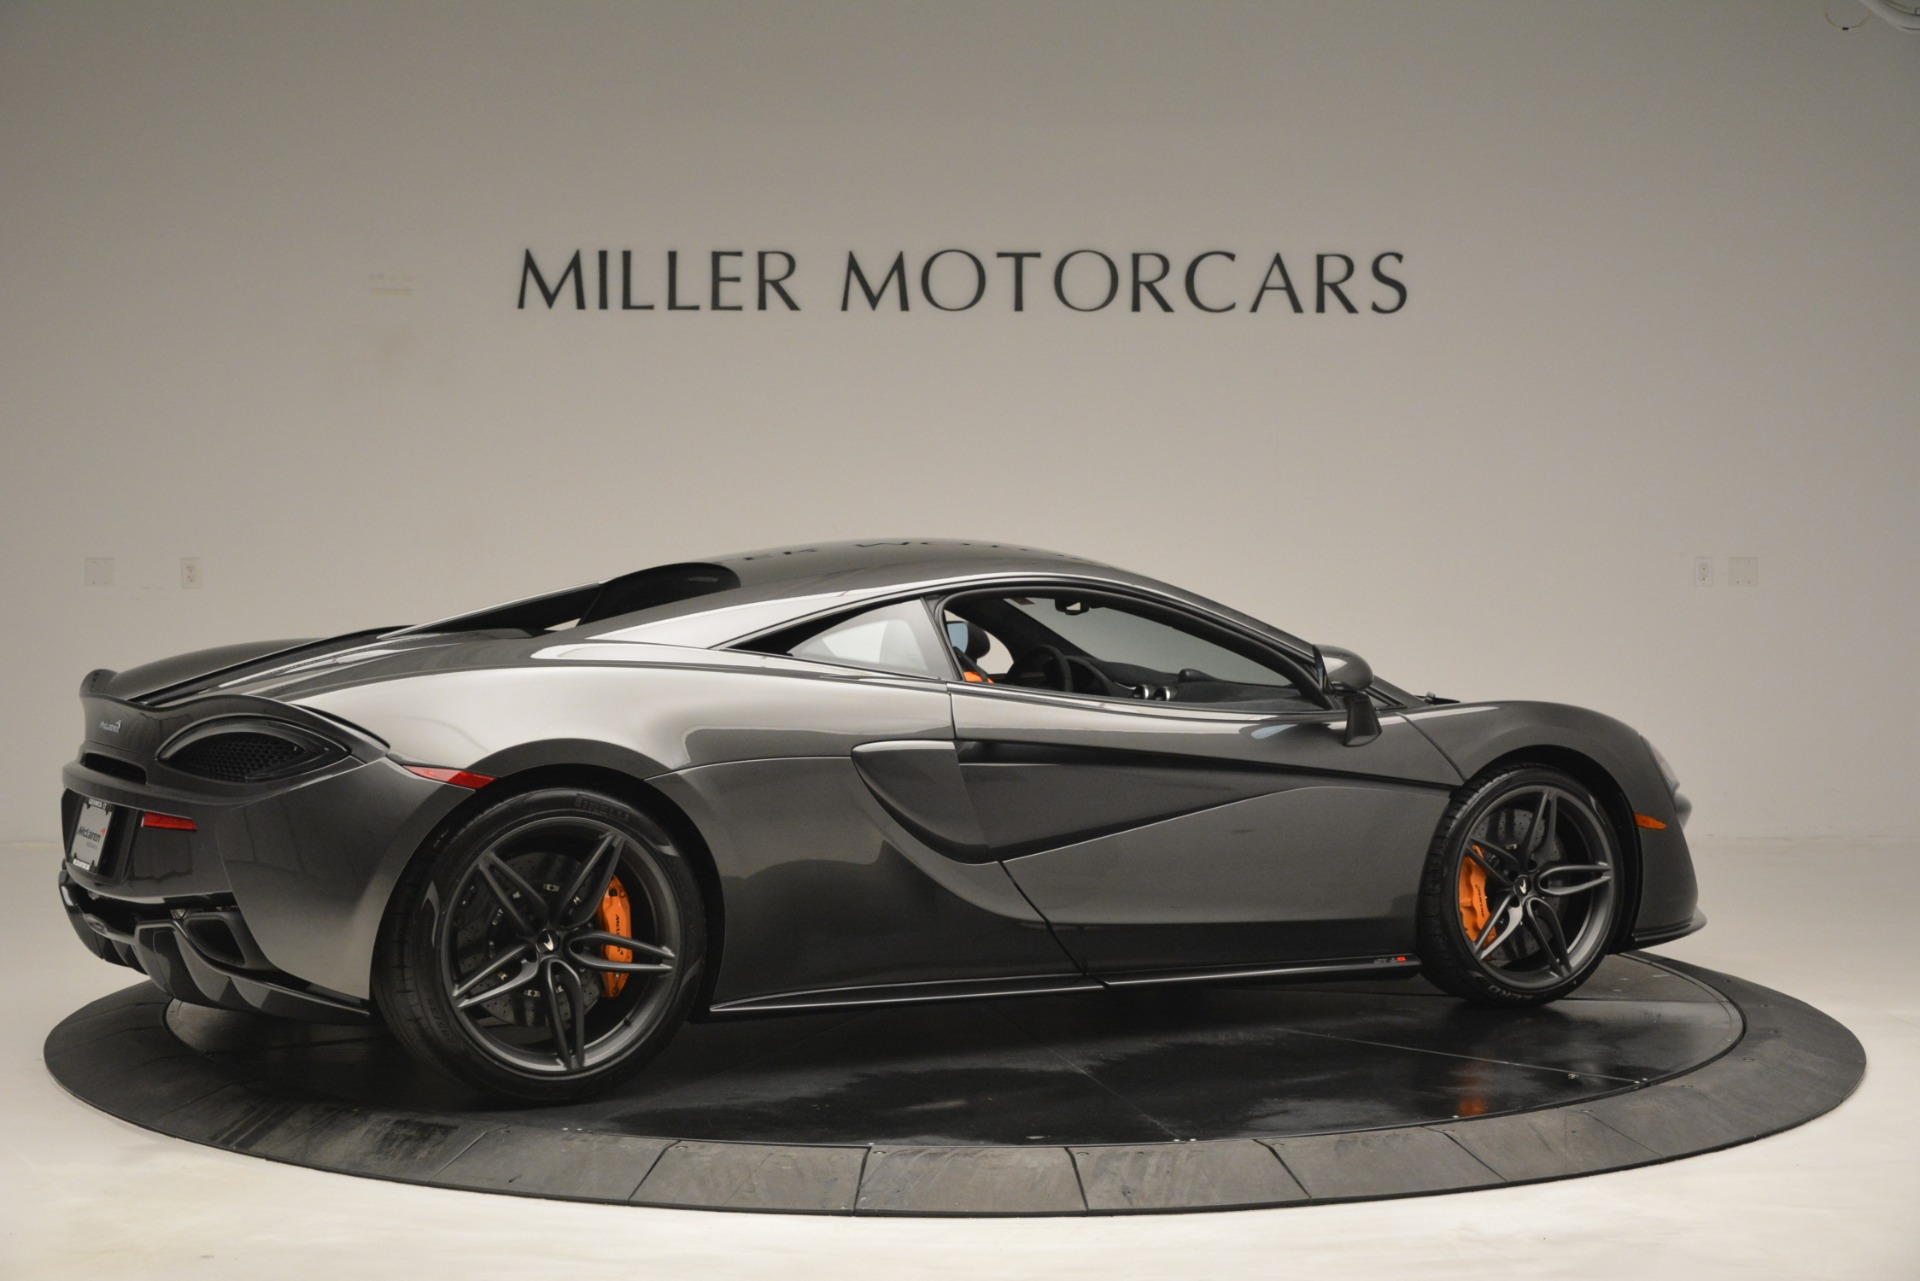 New 2019 McLaren 570S Coupe For Sale ($200,740) | Miller ...